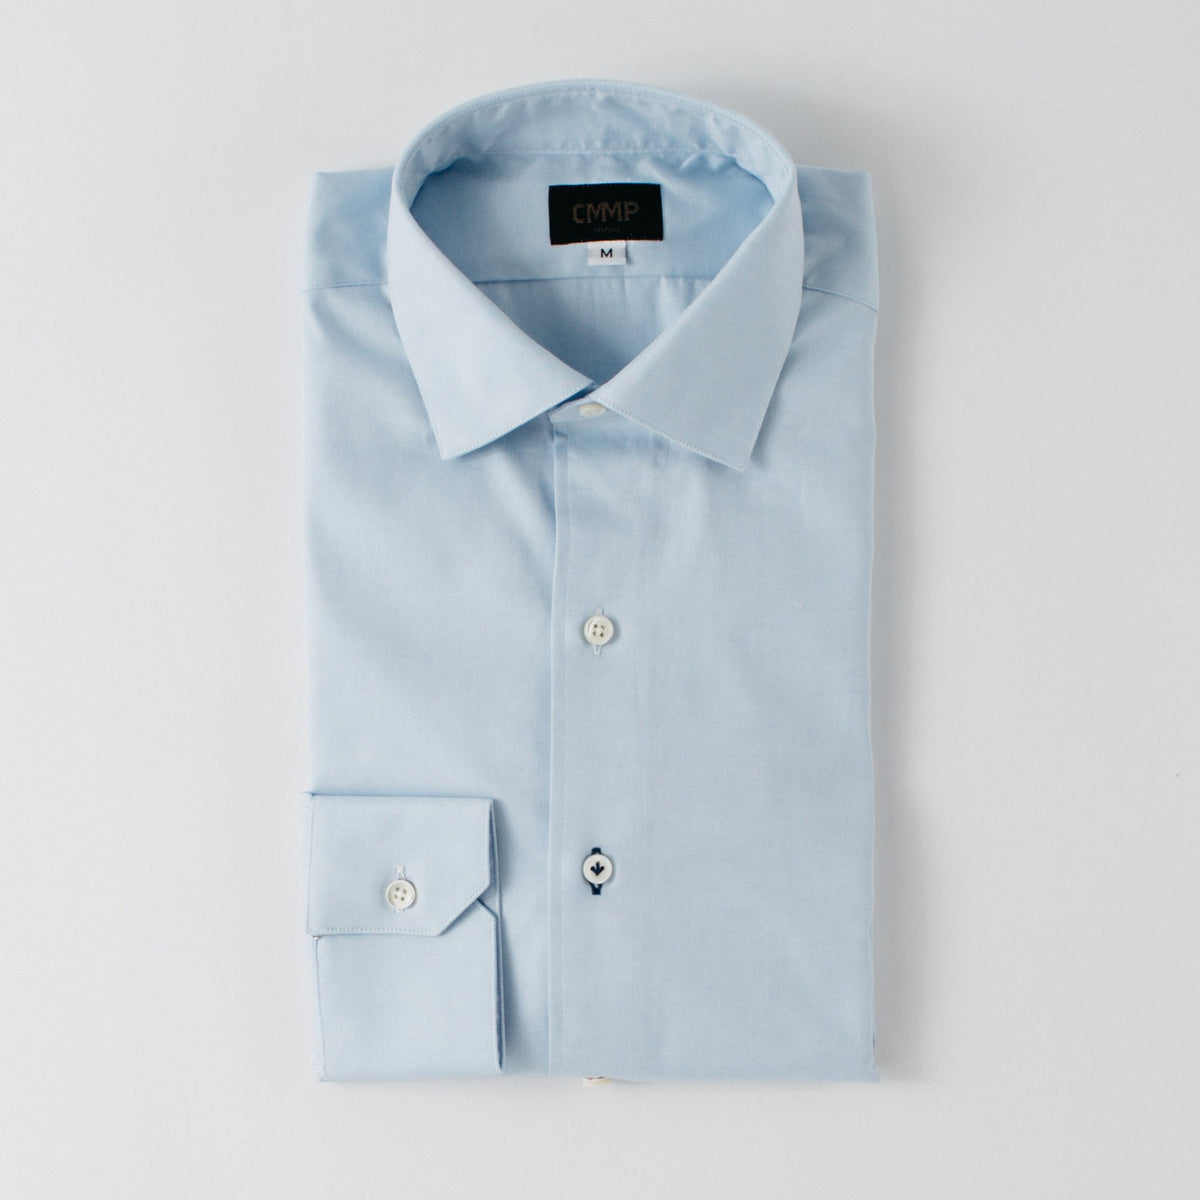 CORE // Blue Shirt